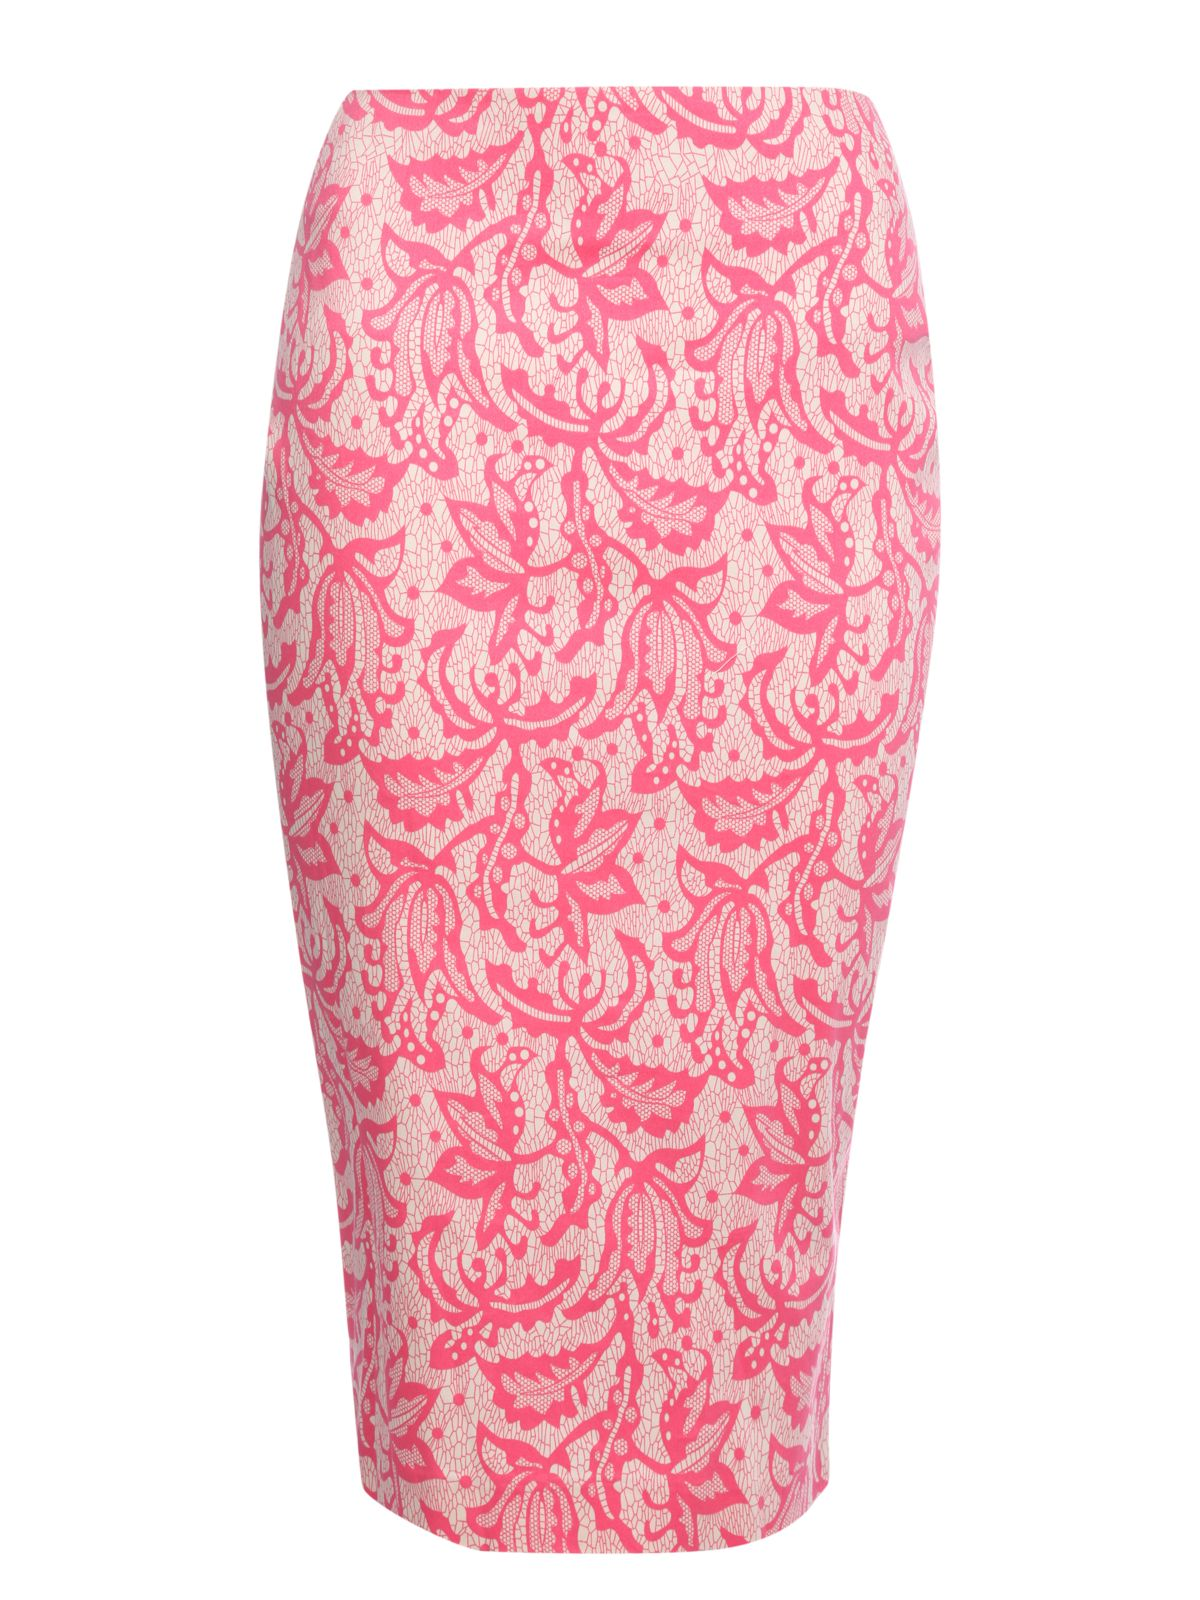 Lace print pencil skirt